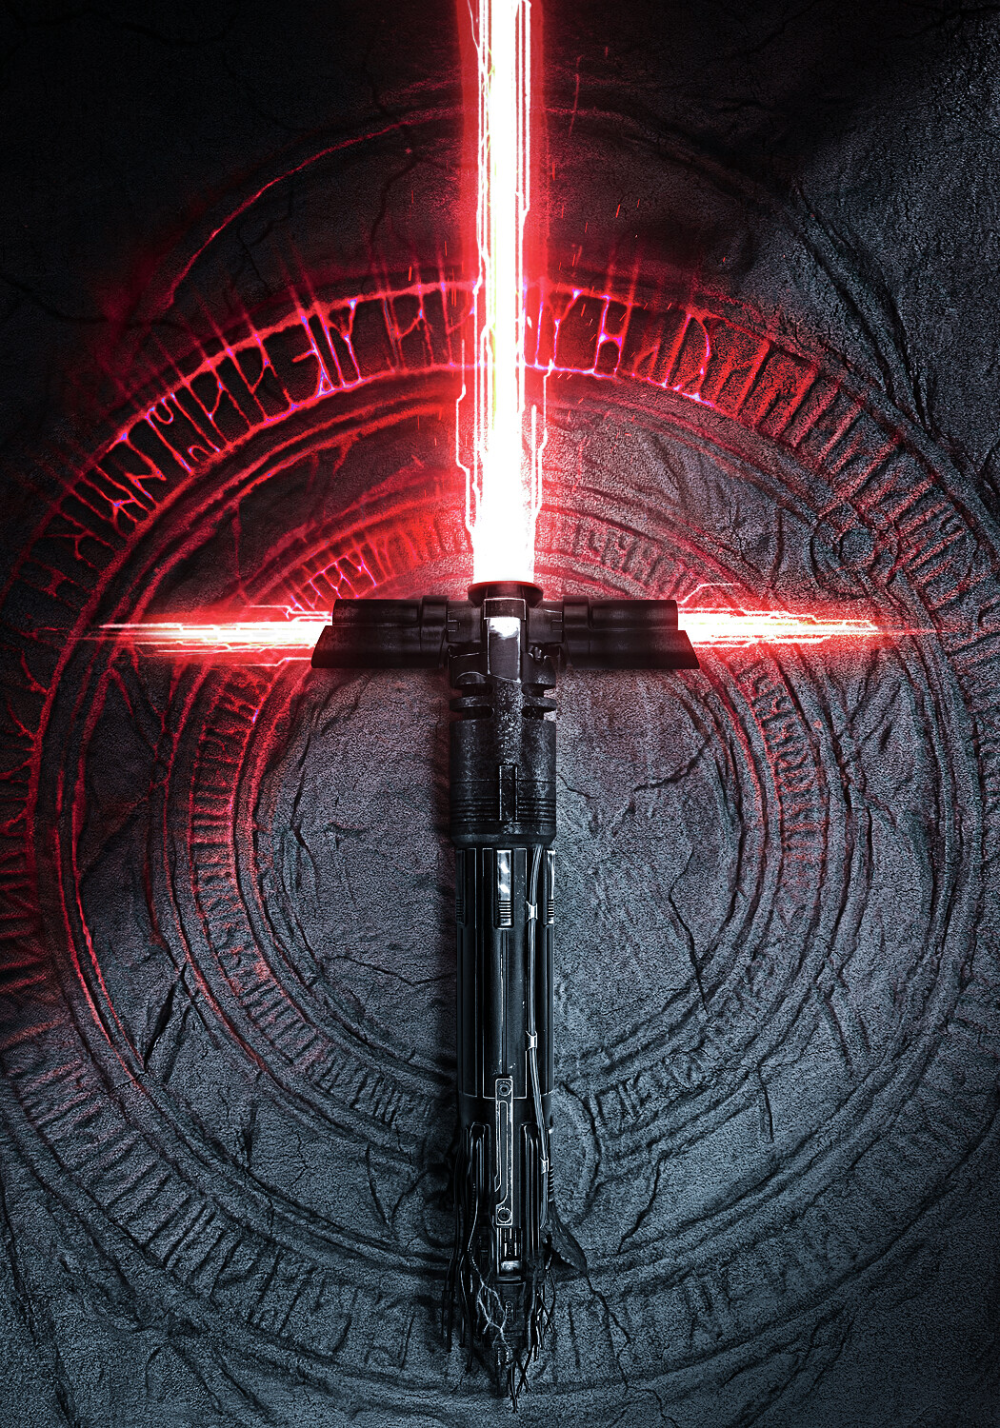 Kylo Ren Light Saber Uses A Single Cracked Kyber Crystal To Form A Serrated Blade And The Two Exhaust Ven Lightsaber Kylo Ren Lightsaber Star Wars Light Saber